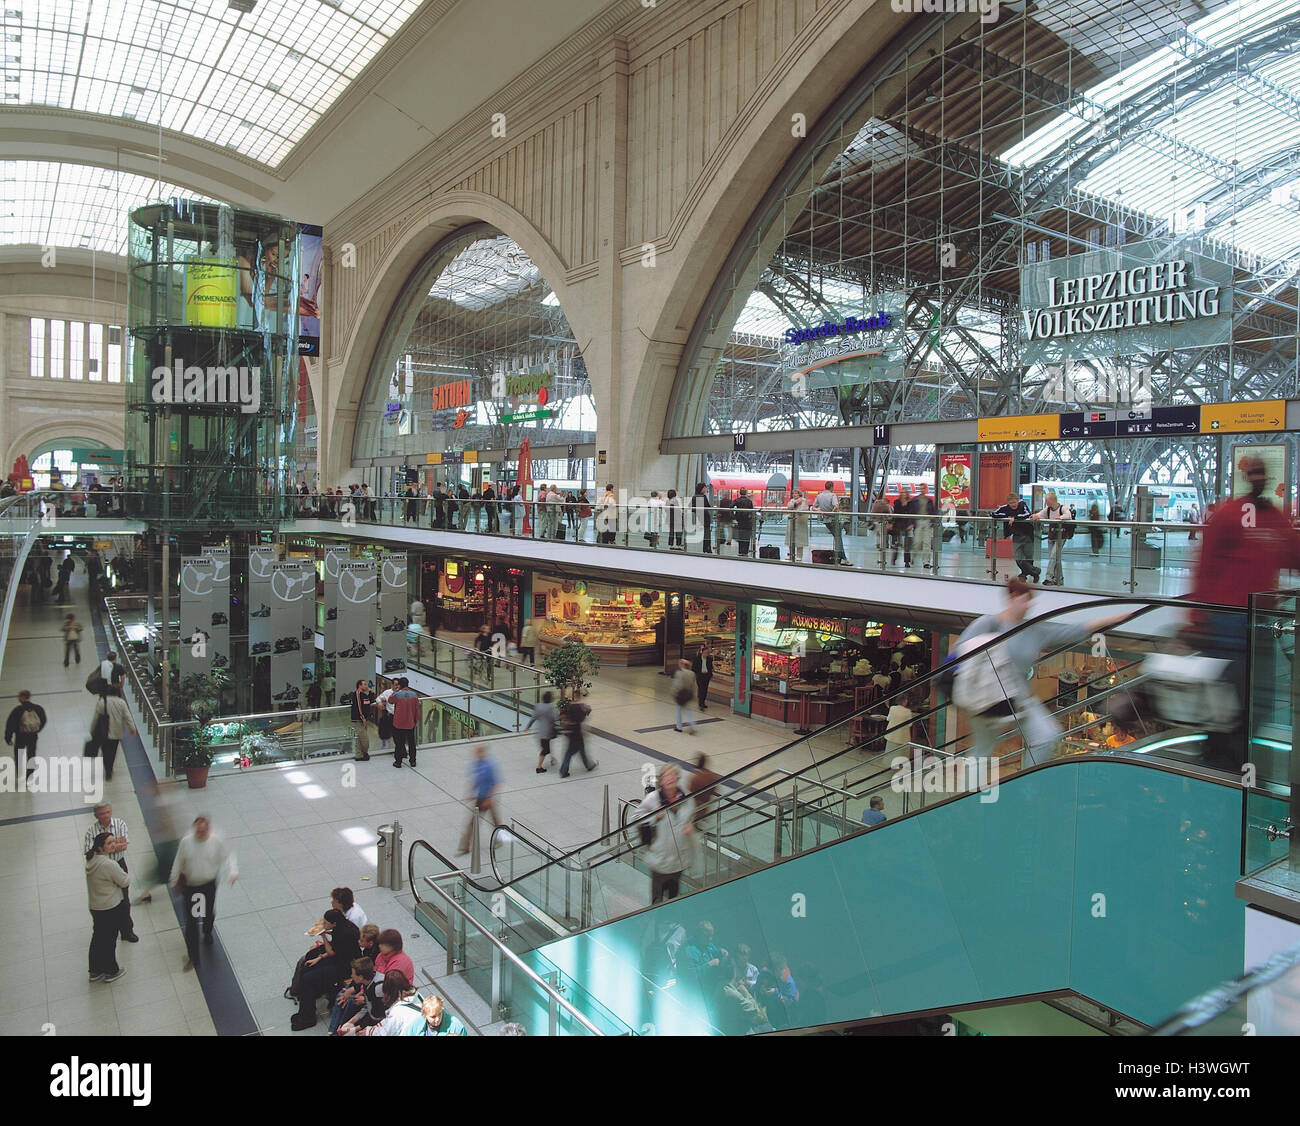 Germany, Saxony, Leipzig, central station, promenades, shopping arcade city centre, centre, space the republic, Stock Photo